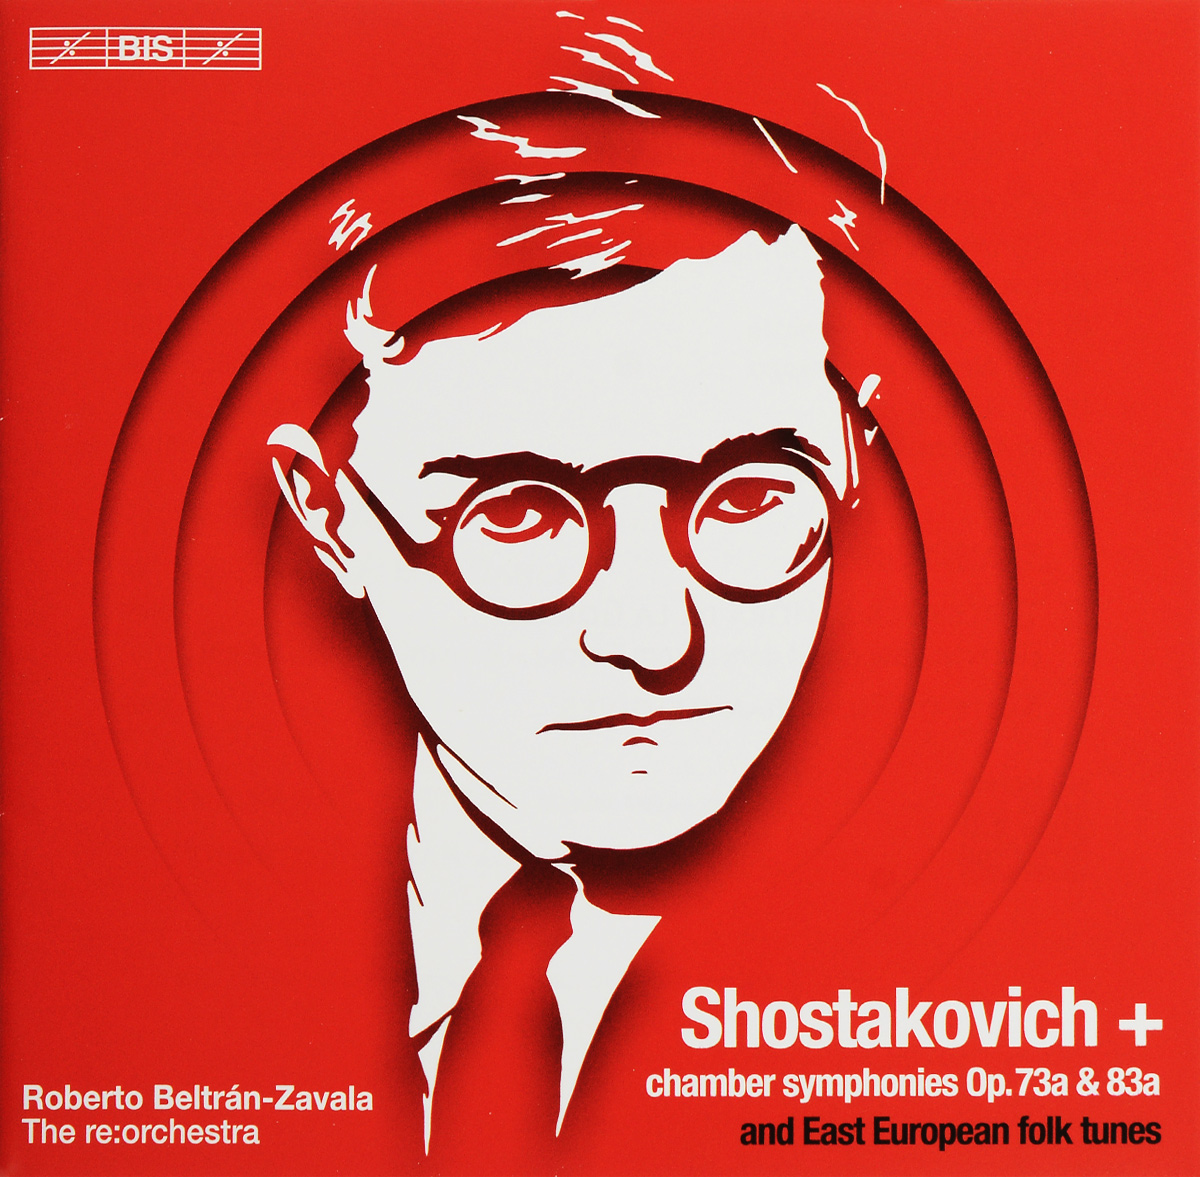 The re:orchestra,Roberto Beltran-Zavala The re:orchestra, Roberto Beltran-Zavala. Shostakovich. Chamber Symphonies Op. 73a & 83a (SACD)